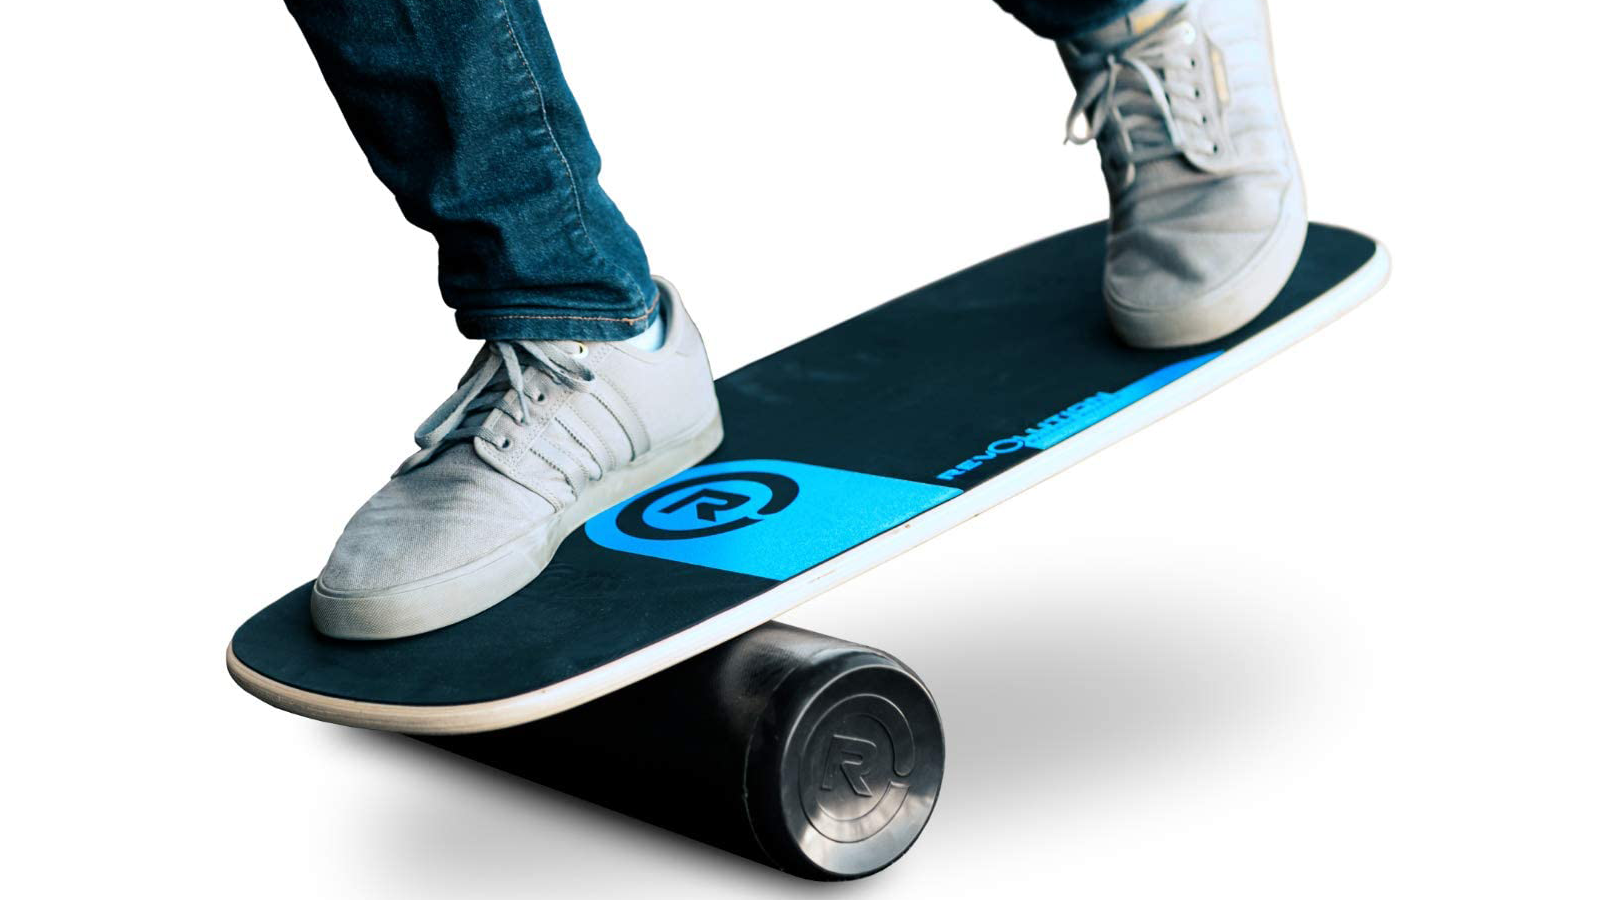 Person balancing on the Revolution 101 board